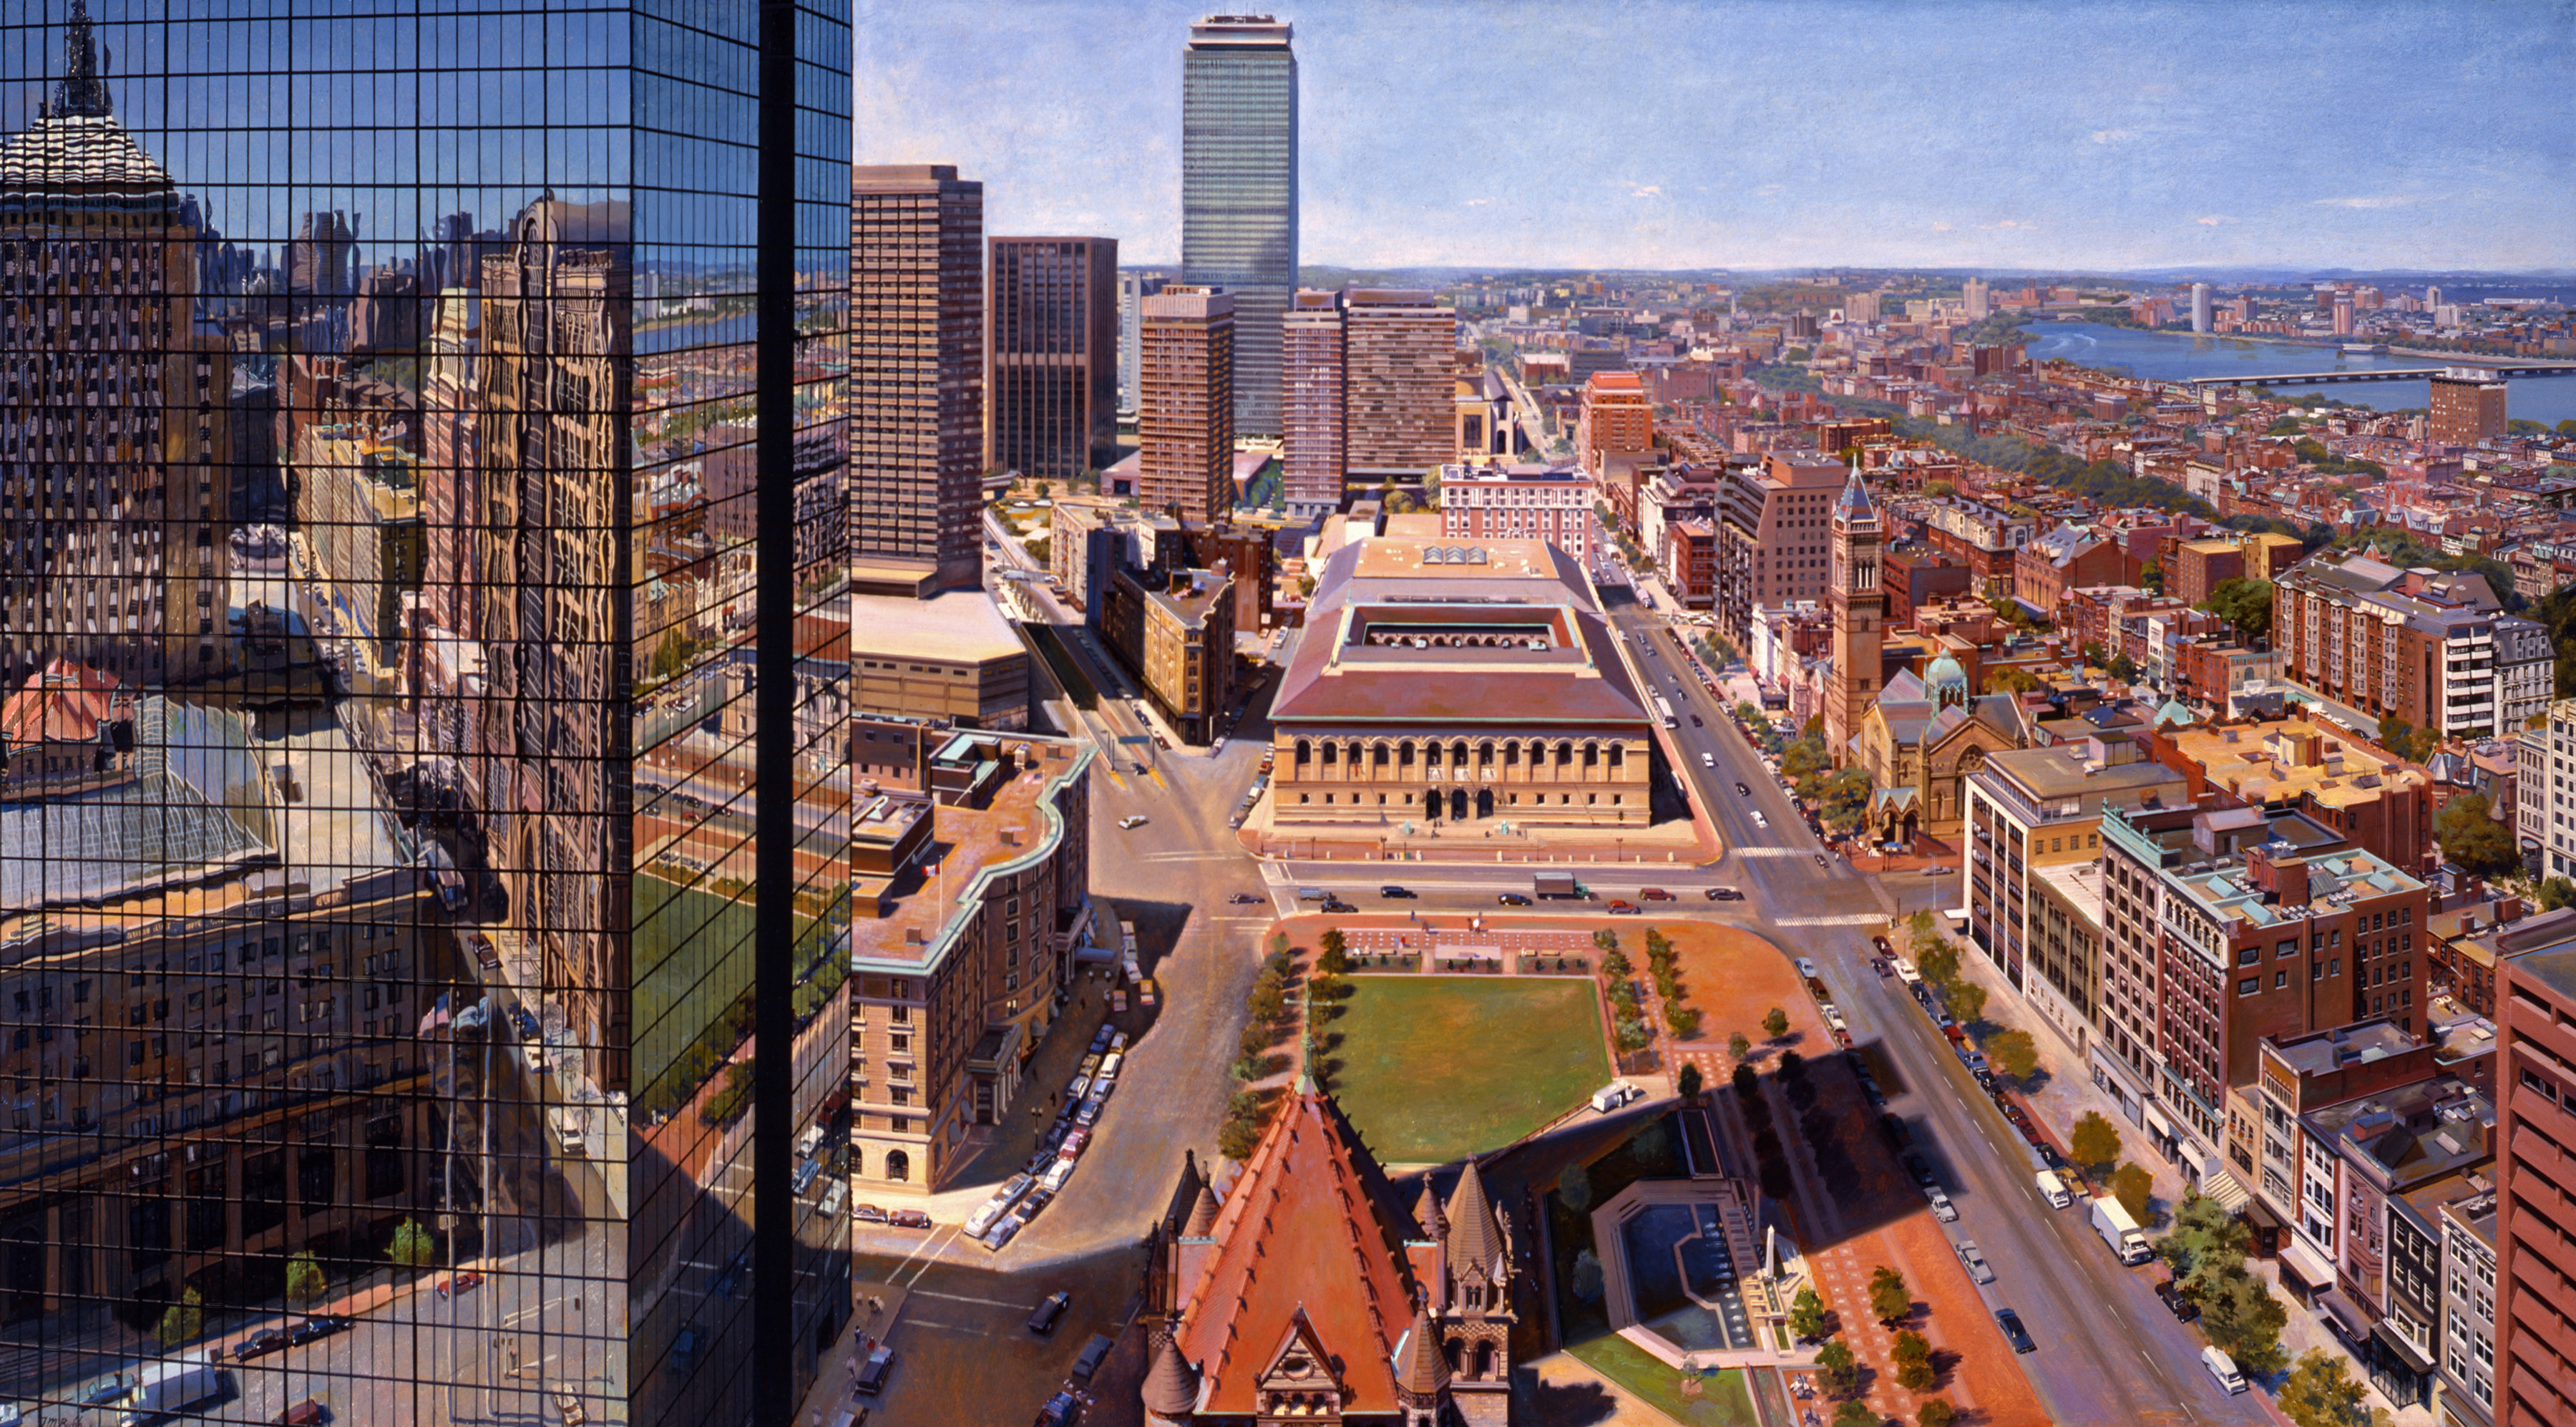 Copley Sq from 500 Boylston 1991 oil 36 x 66 copy